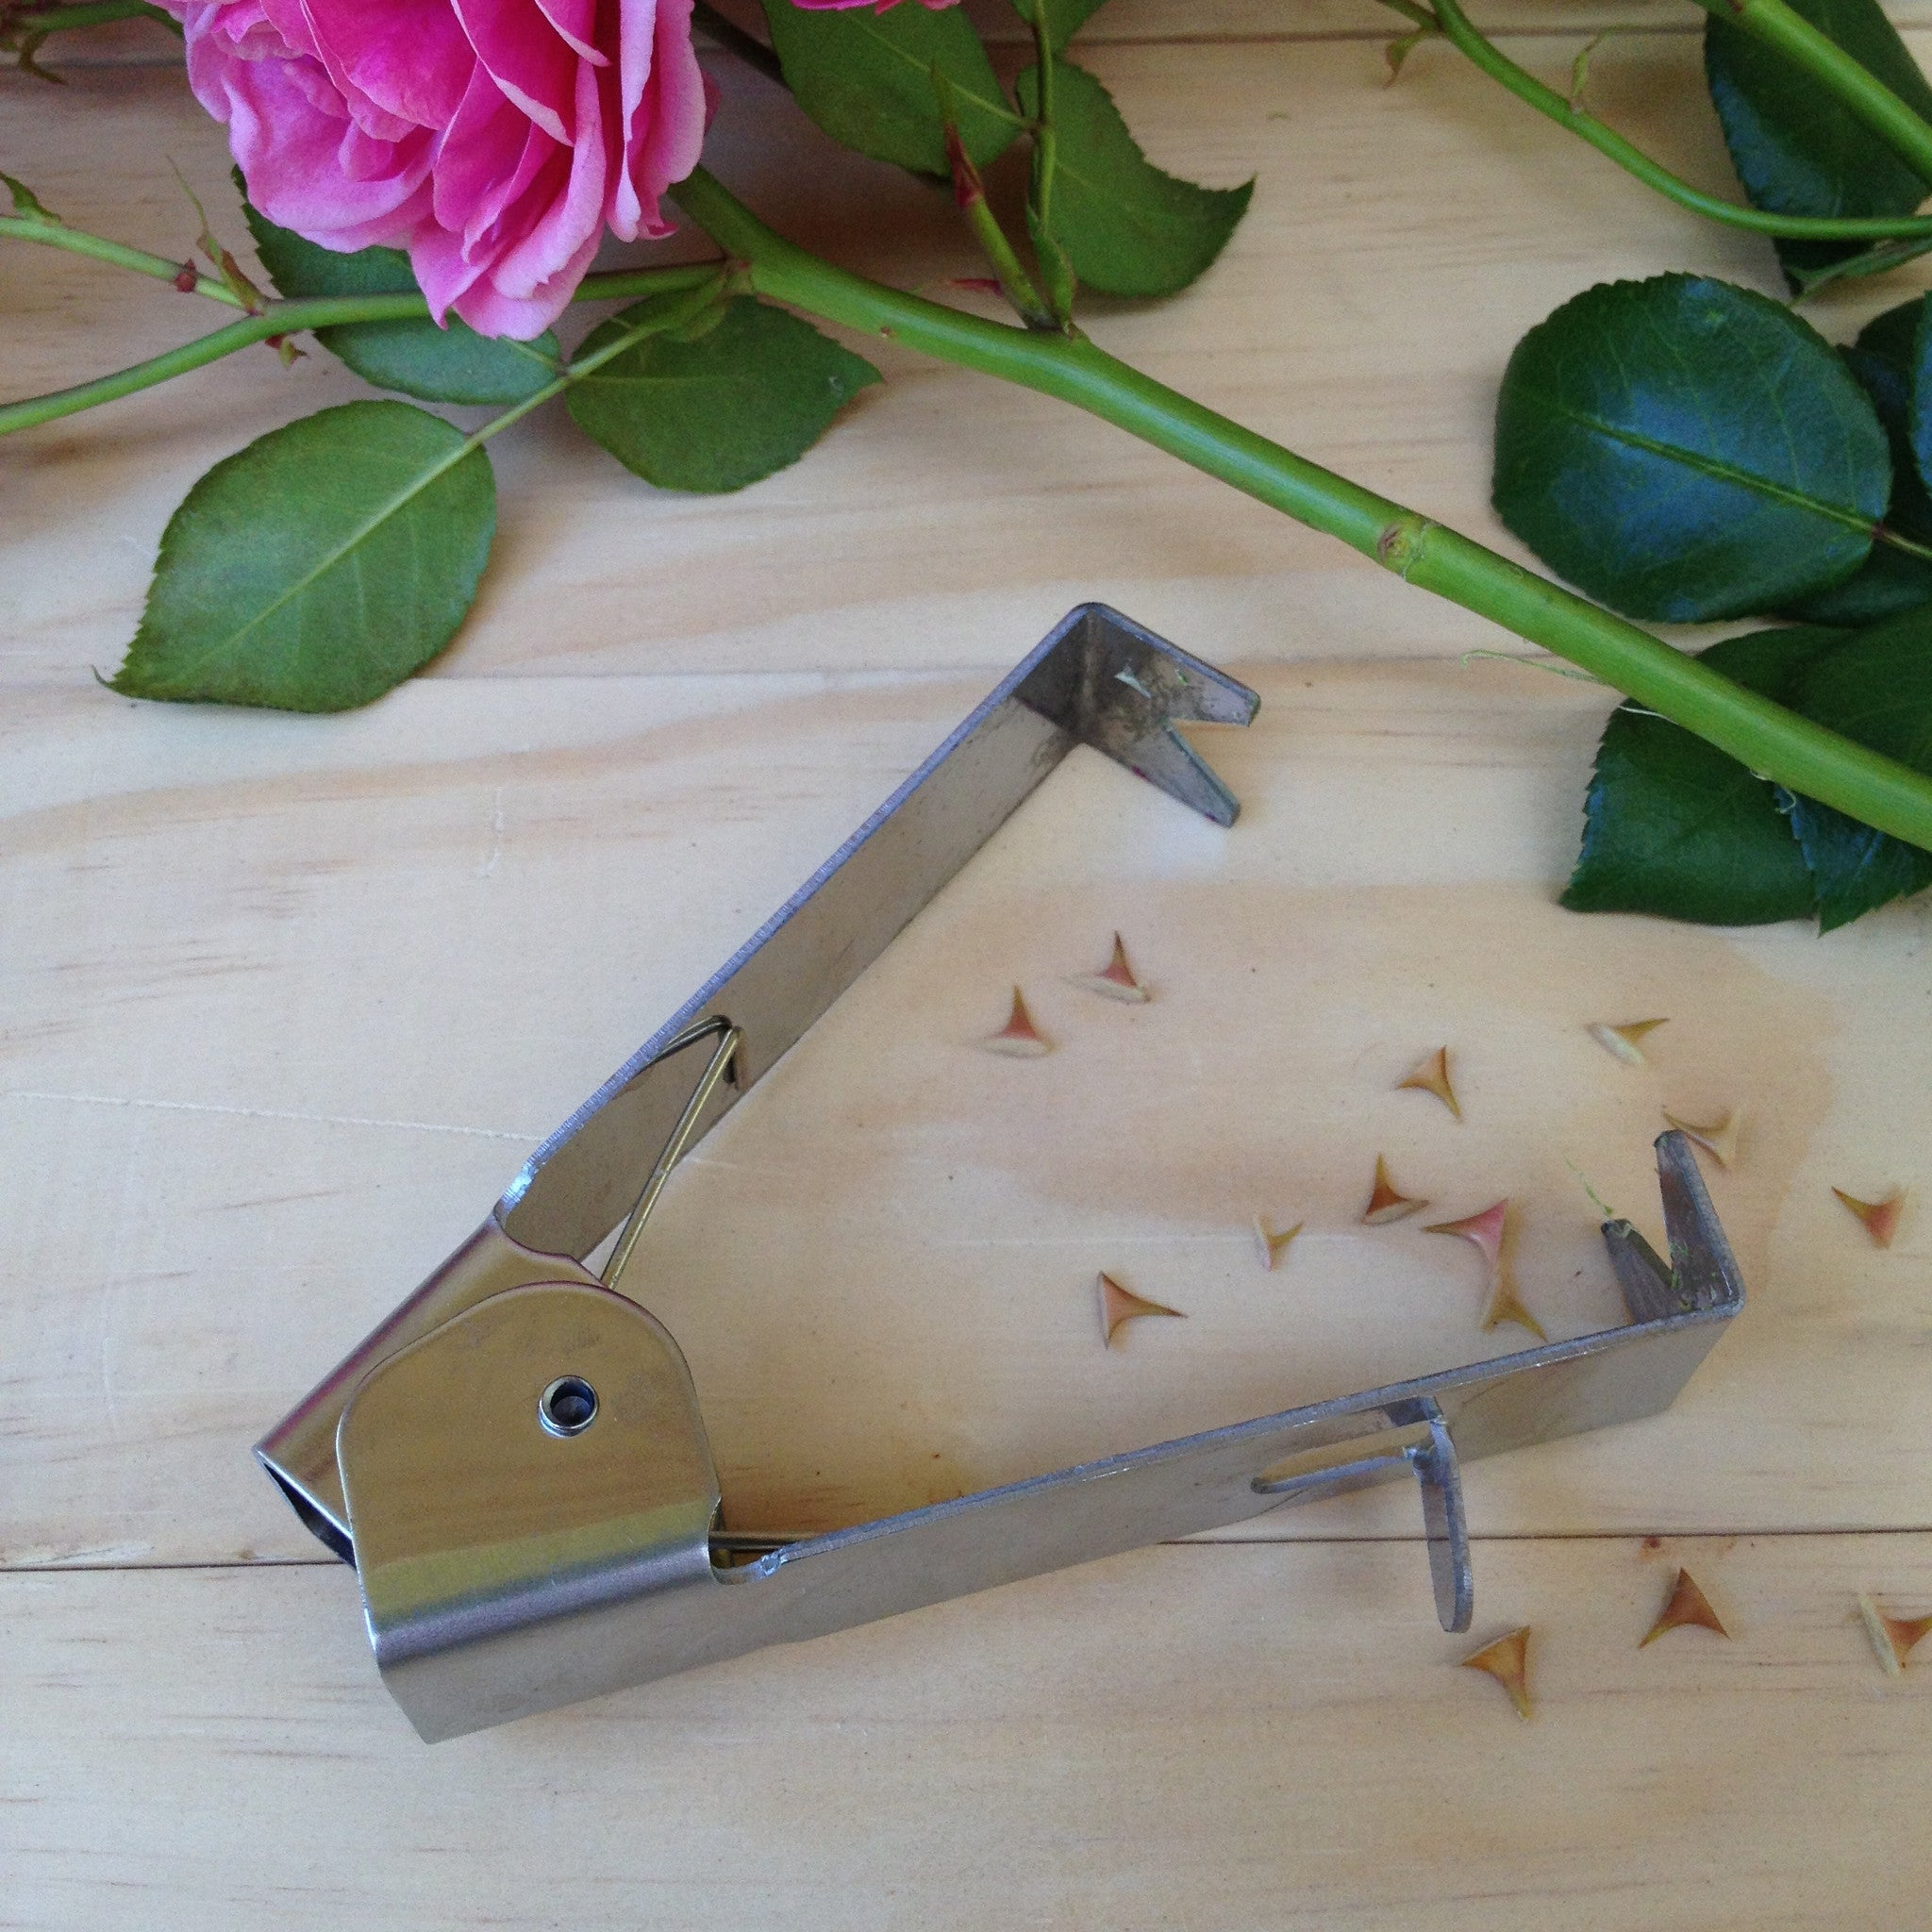 Thorn Stripper - The Potting Shed Garden Tools